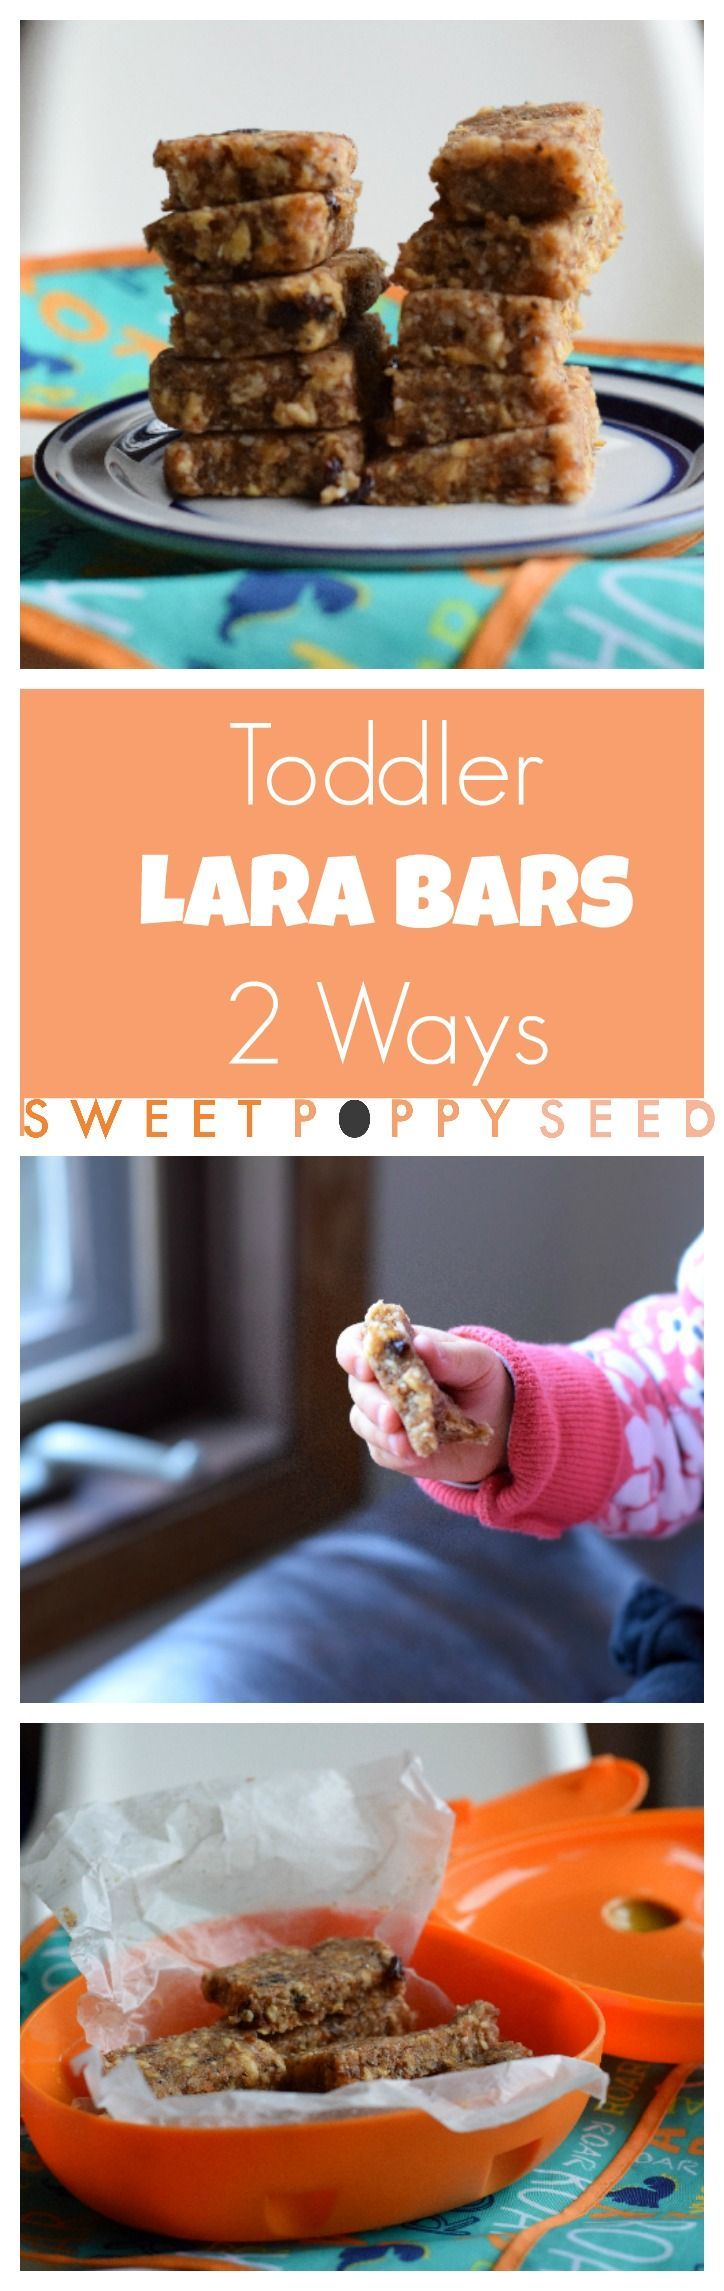 My toddler's absolute favorite snack! Easy, naturally sweetened and packed with fiber and protein. Perfect for little hands.